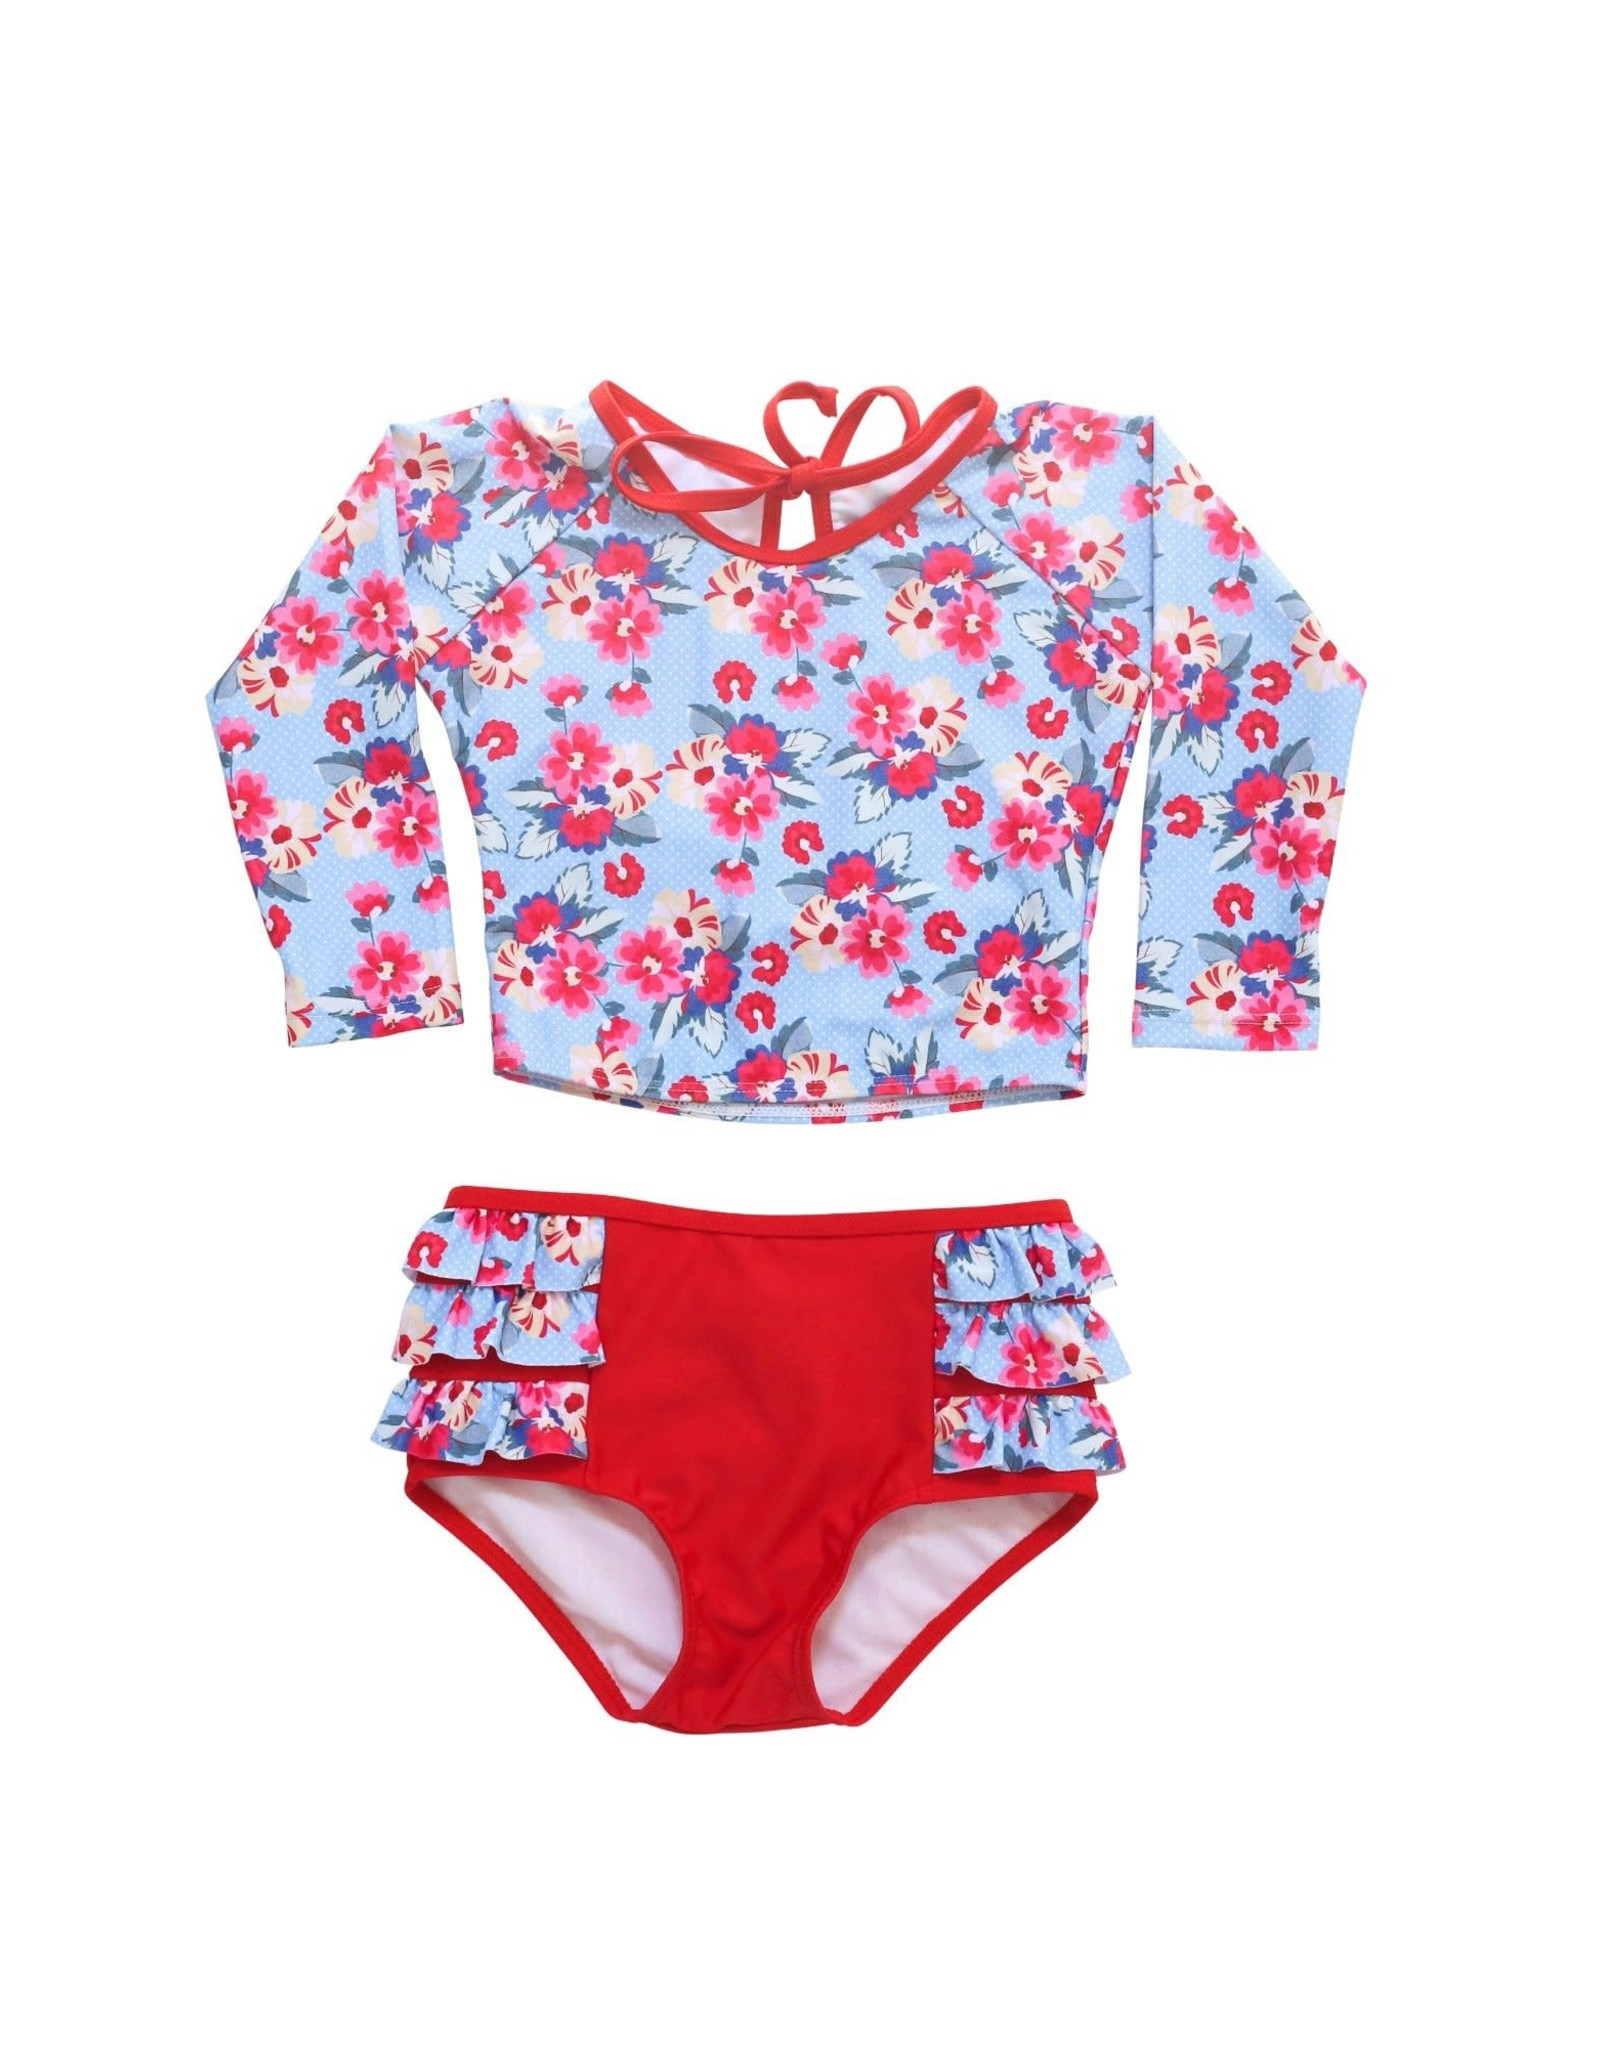 Blueberry Bay Blueberry Bay Reef Fiddler Two Piece Swimsuit